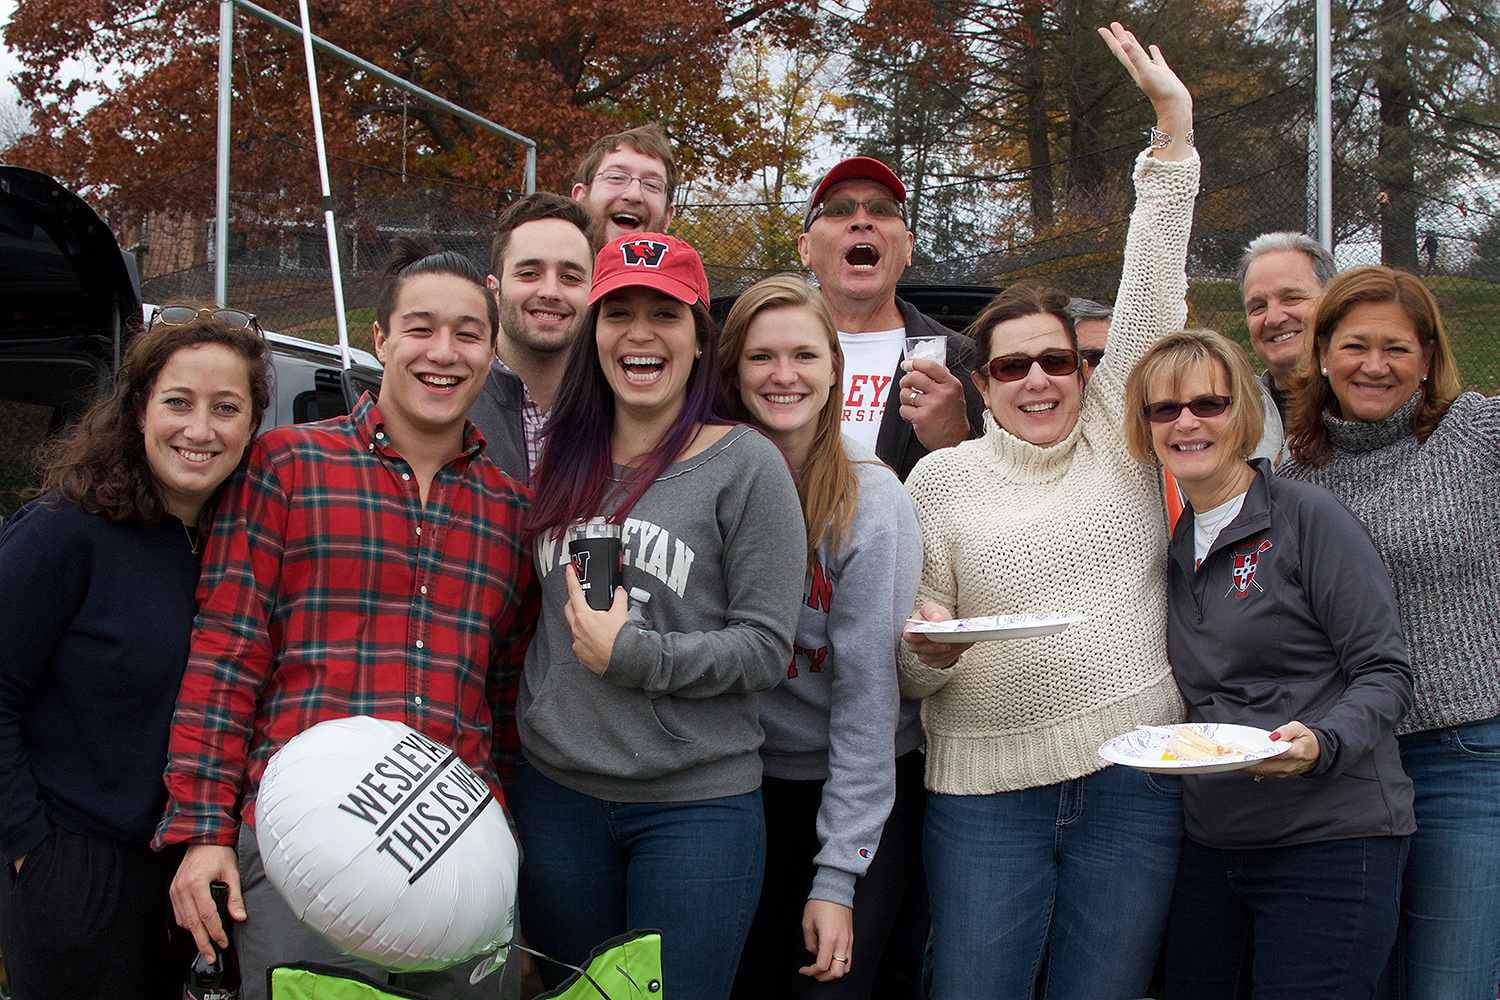 Members of the Wesleyan community, friends and family gathered on Andrus Field on Nov. 7 for tailgaiting before the Homecoming football game against rival Wlliams College. (Photo by Ryan Heffernan '16)